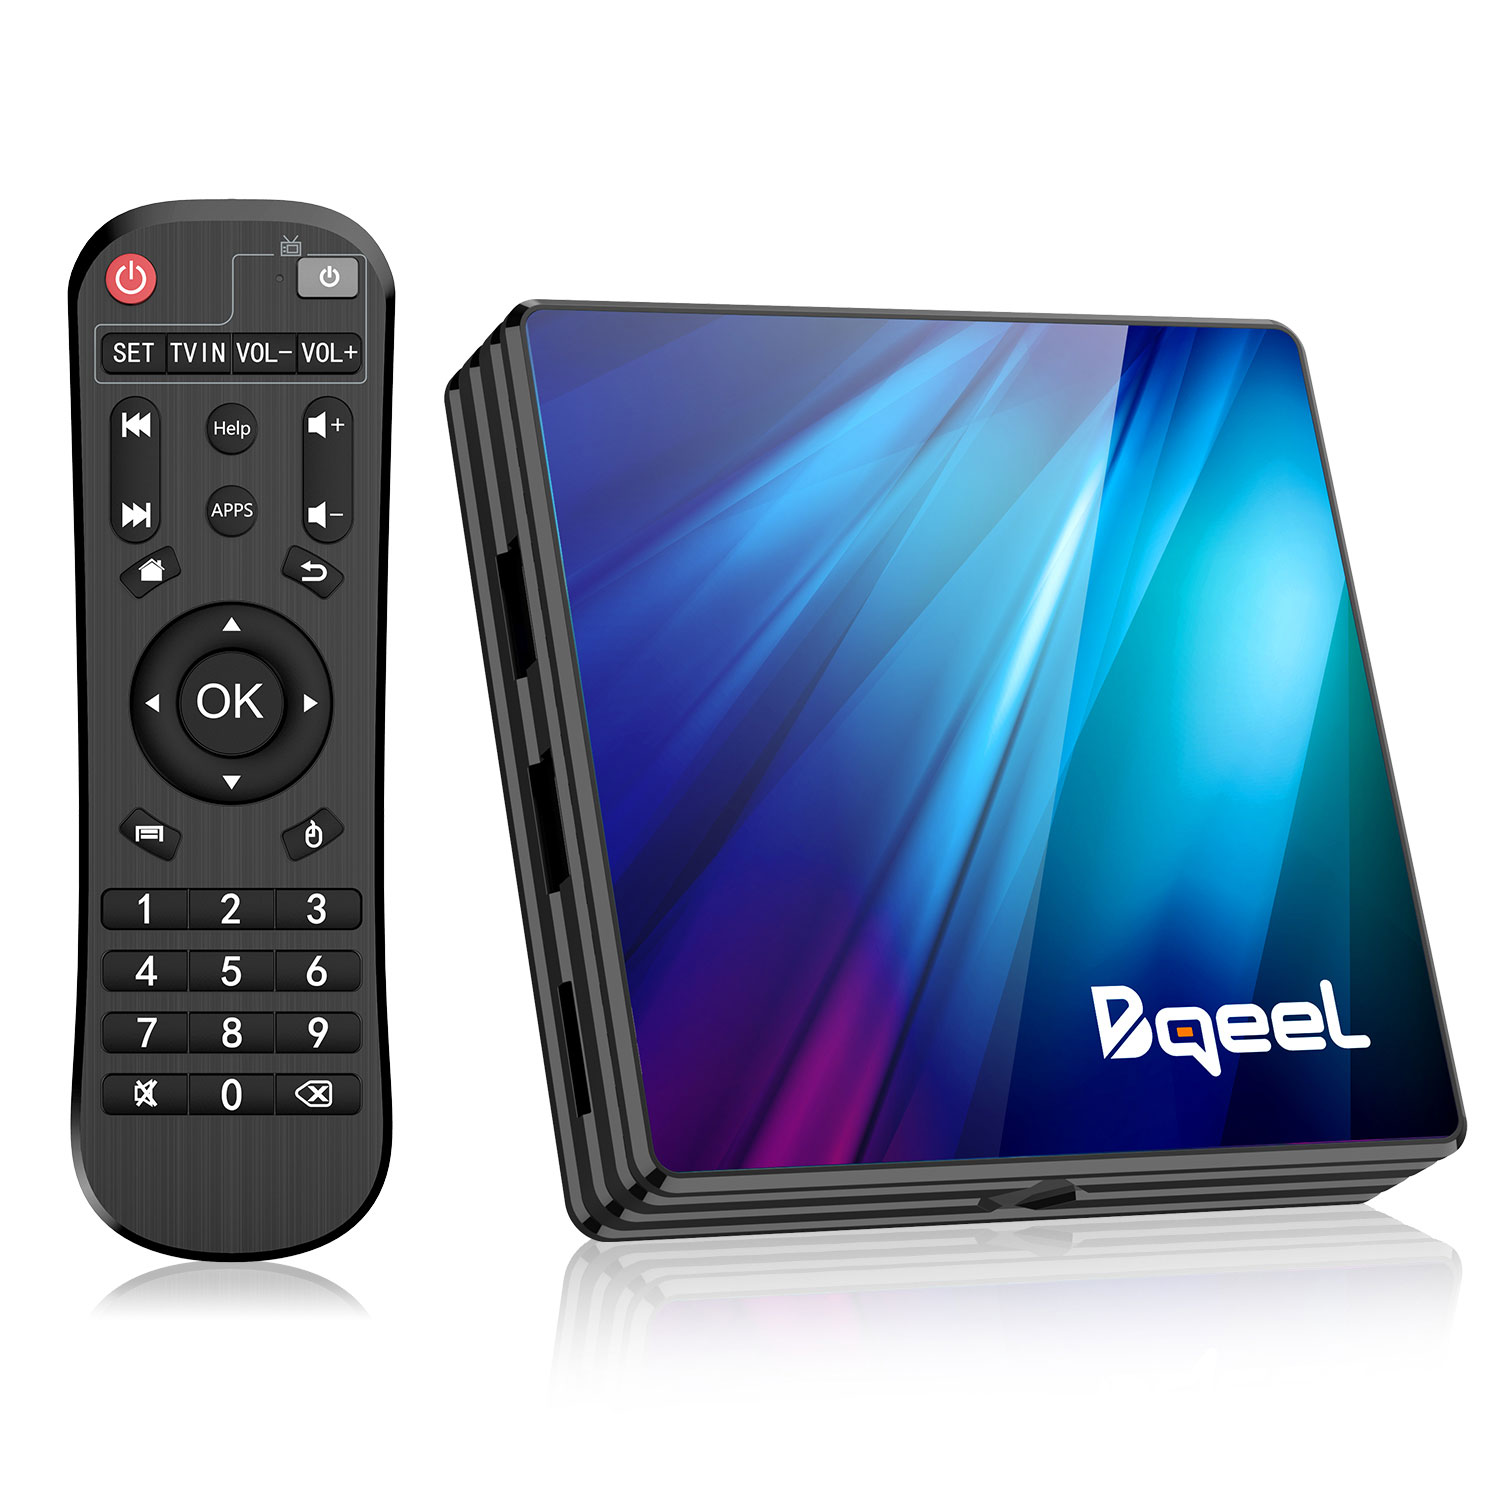 Bqeel Android TV Box 9.0 4GB RAM 64GB ROM, Android Box RK3318 Quad-Core 64bits Dual-Band WiFi 2.4G/5G BT 4.0 3D 4K Ultra HD H.265 USB 3.0 Smart TV Box